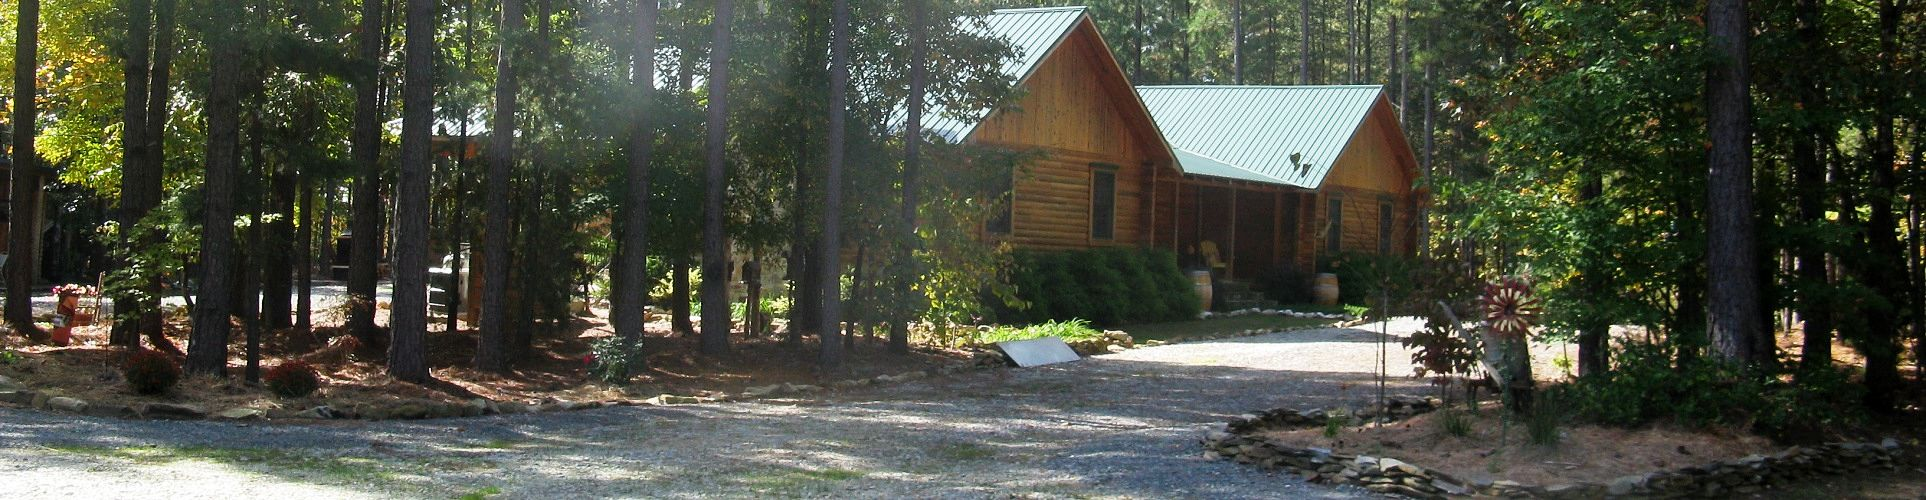 Equestrian community near Shangrila Guest Ranch